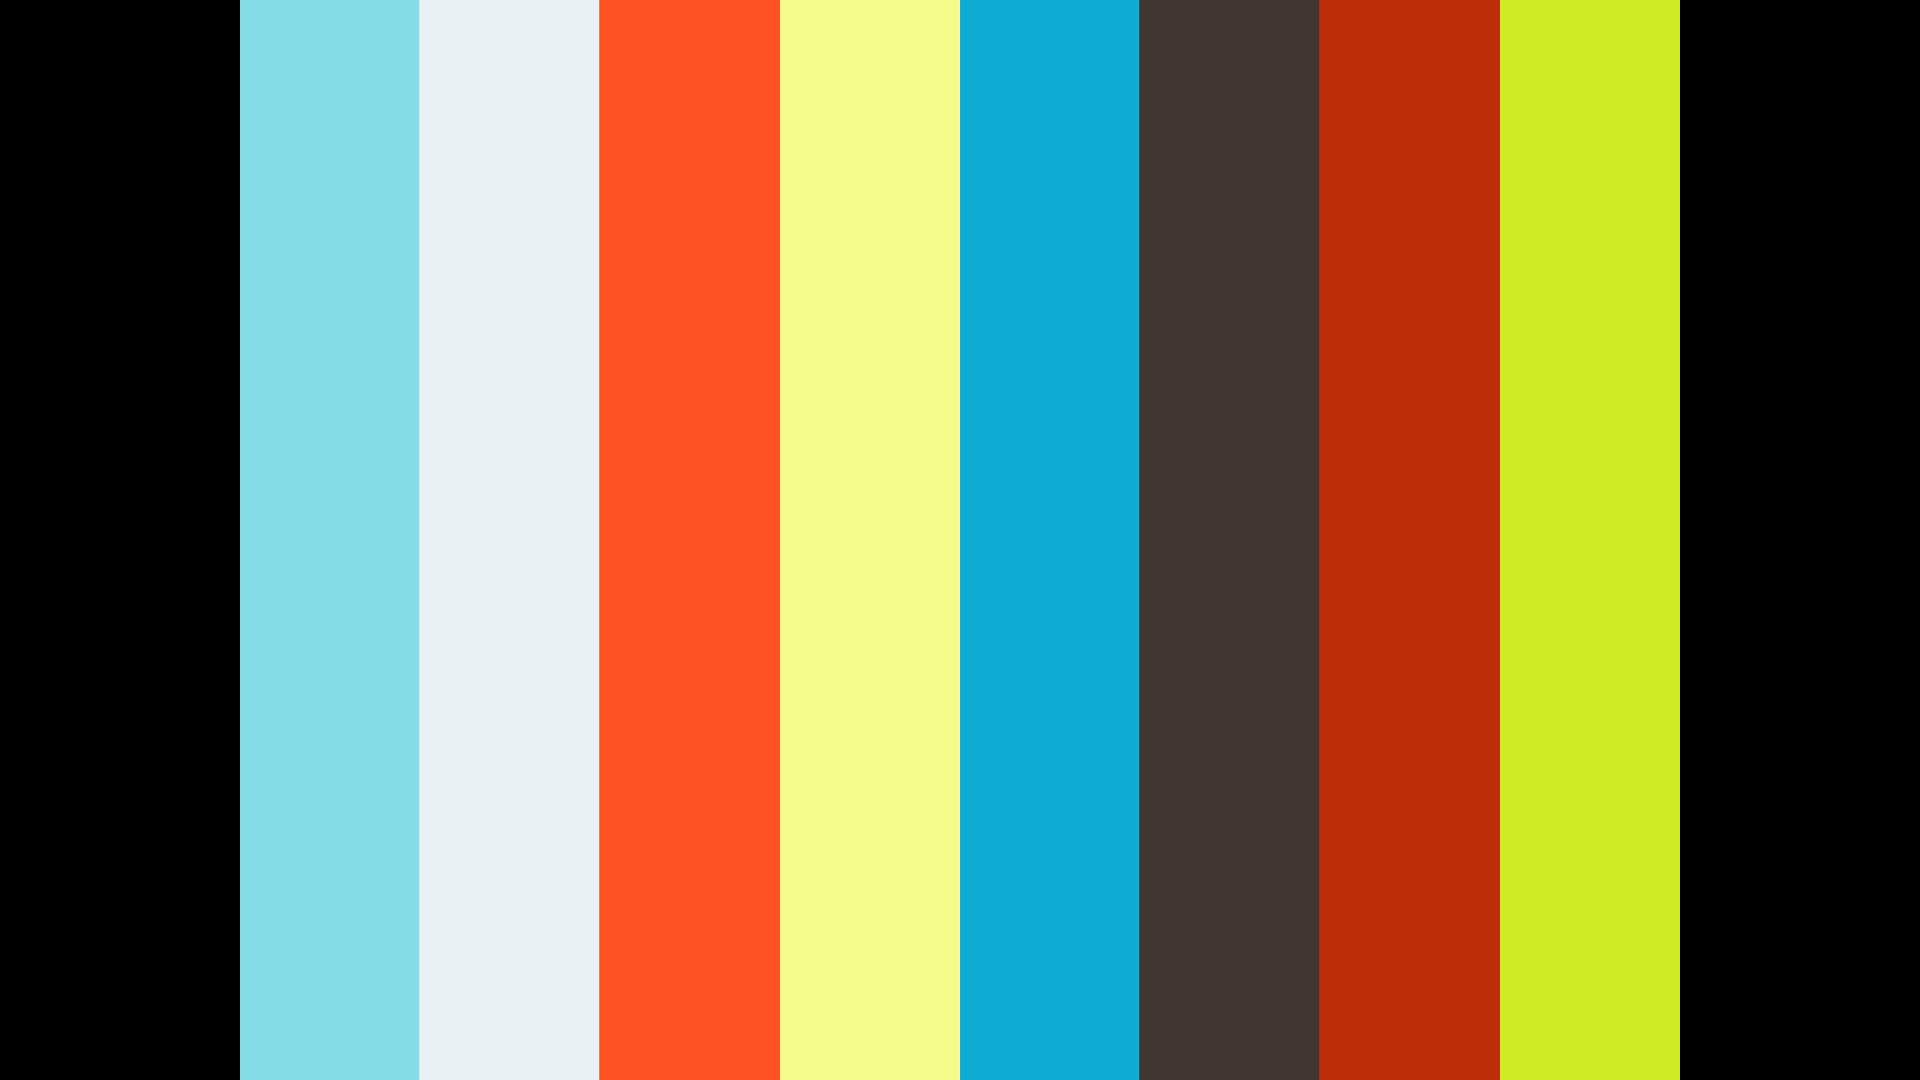 Hal Mayforth Creates a Painting